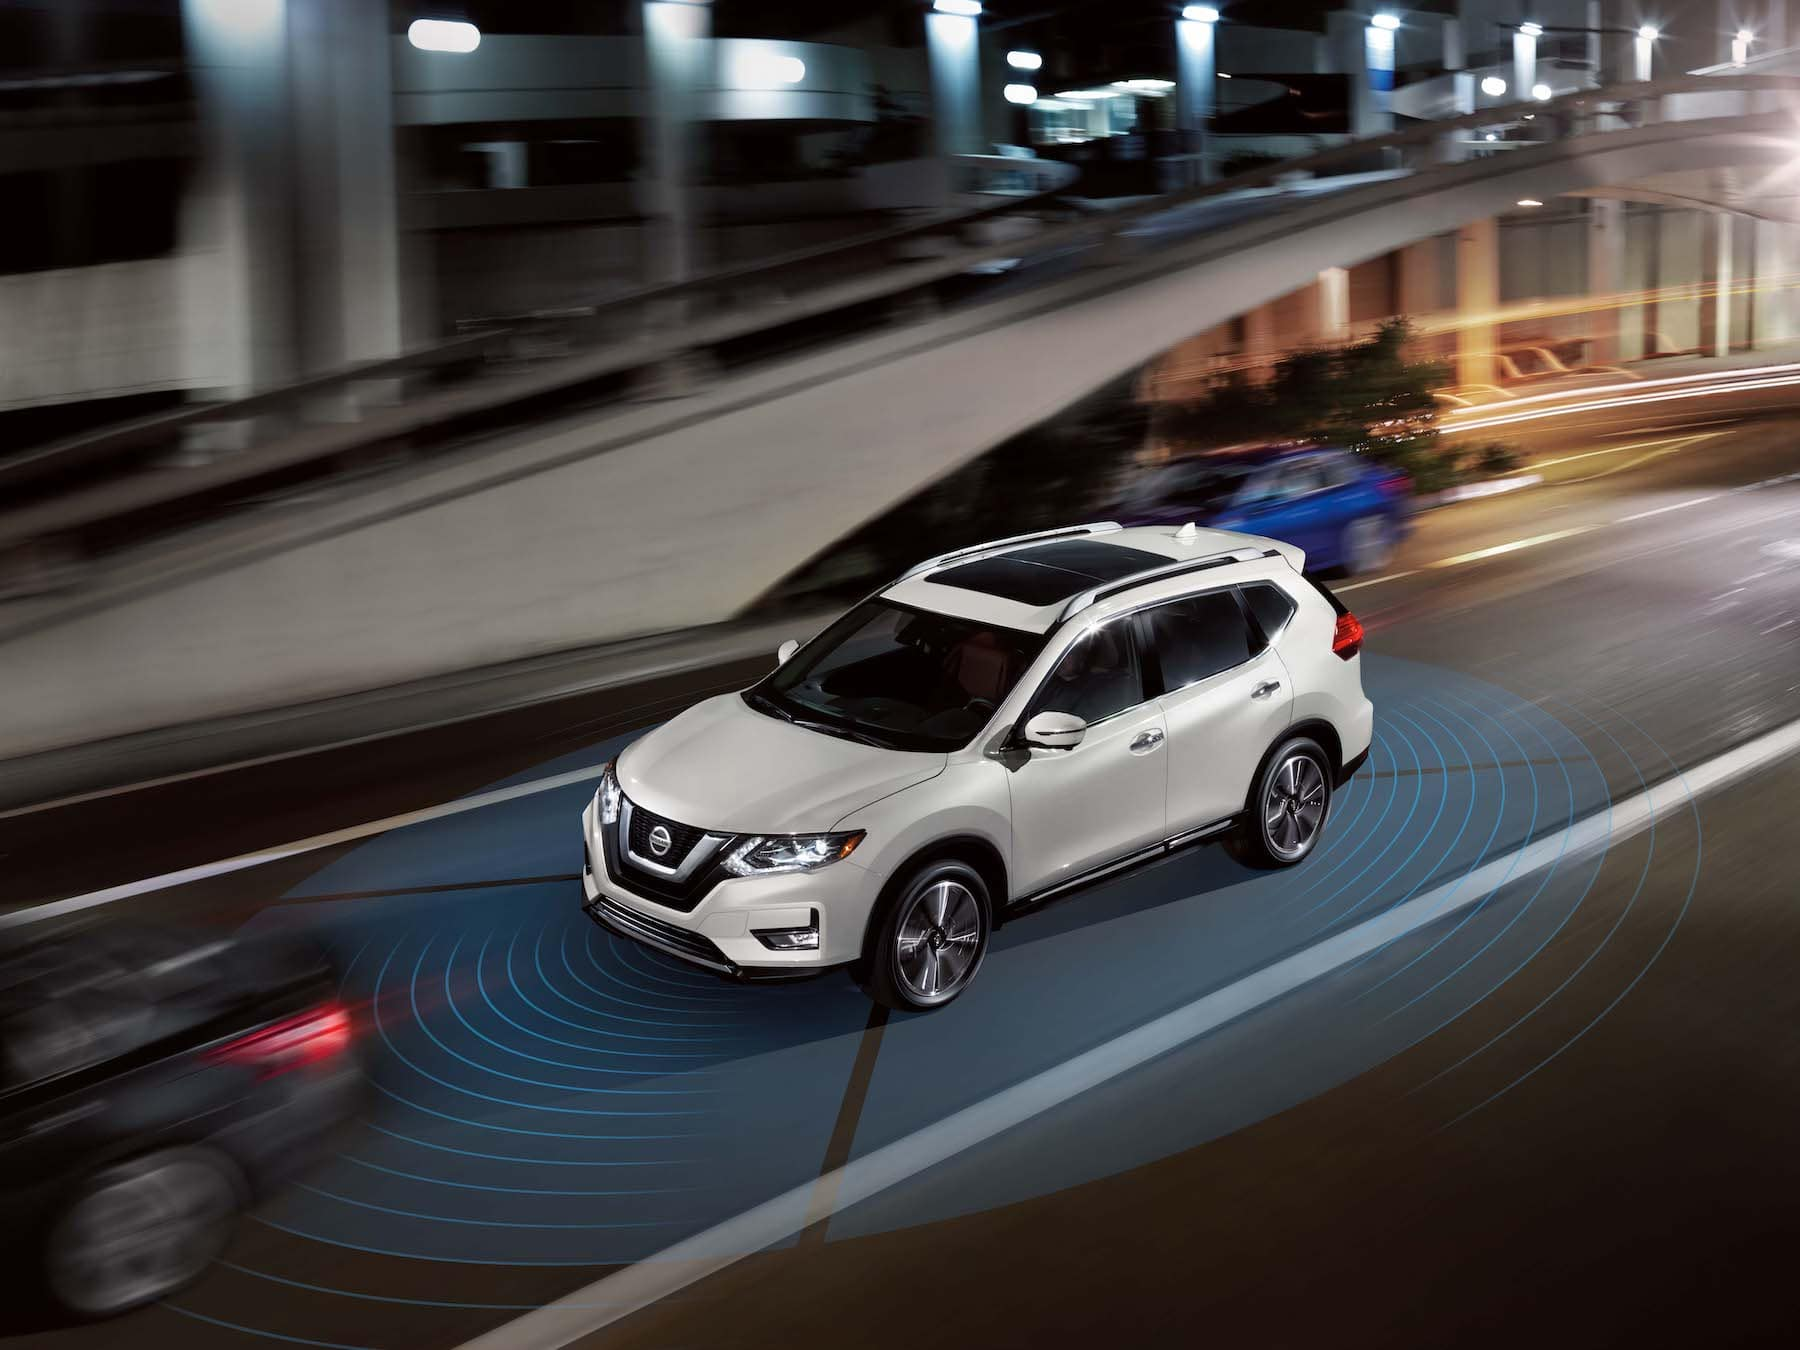 The 2020 Rogue model features at Boch Nissan in Norwood | The safety feature of the 2020 Nissan Rogue